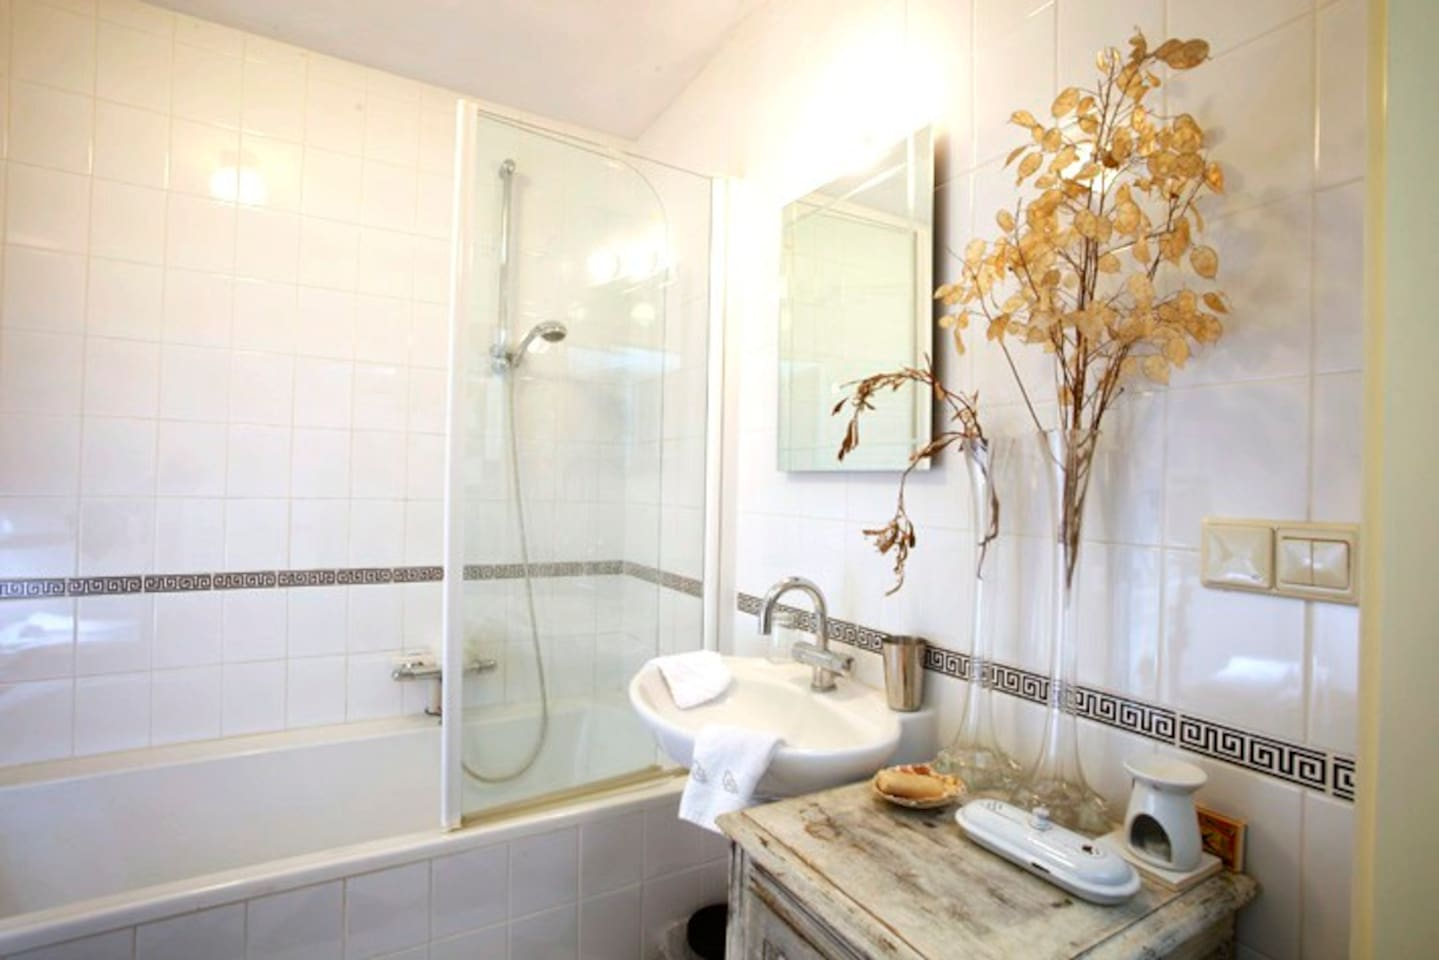 Your own bathroom for a quick shower in the morning and a relaxing bath in the evening